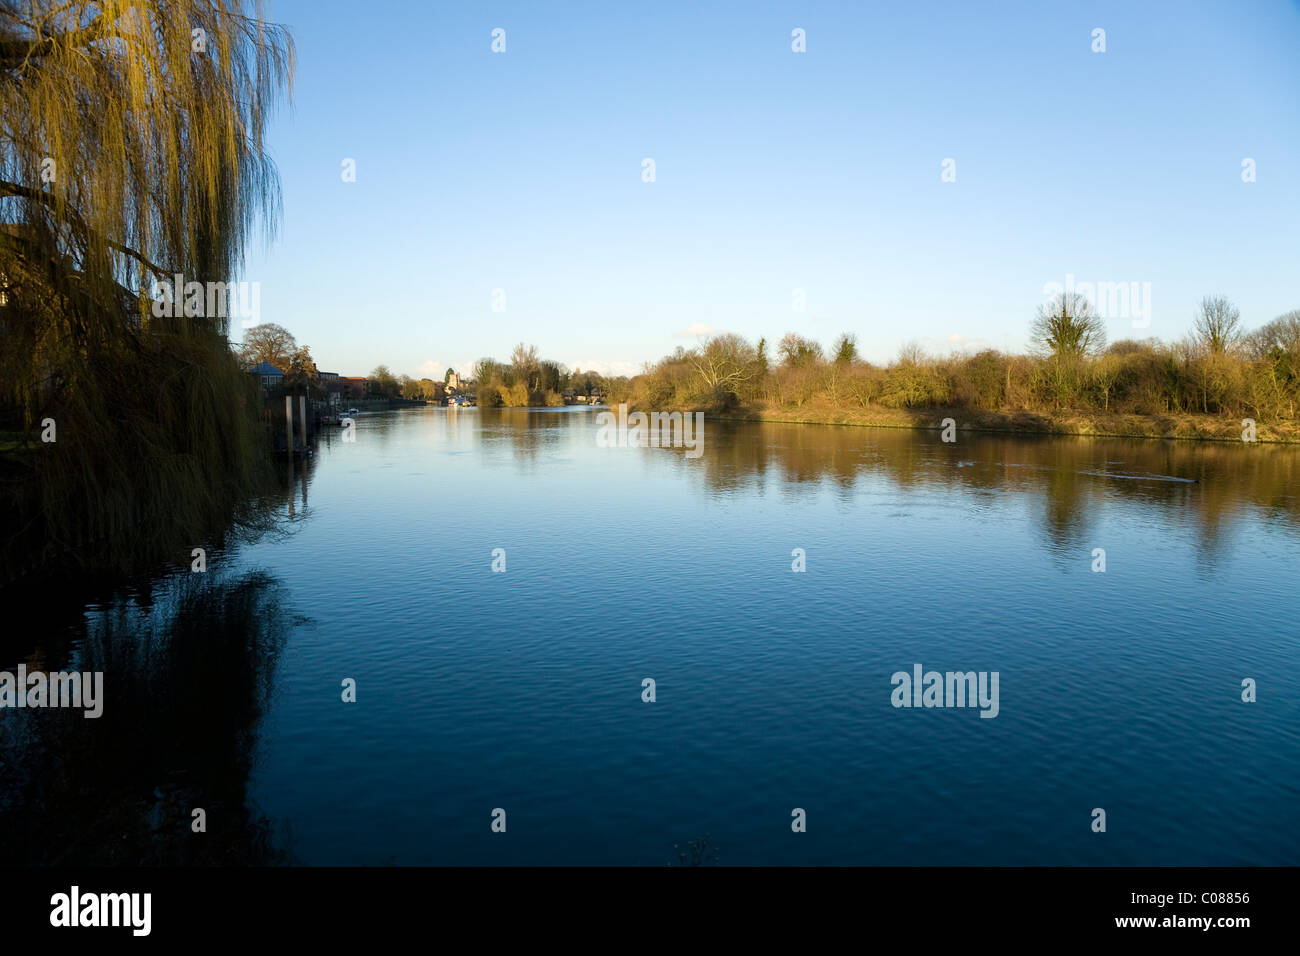 The River Thames – looking east – seen from river bank at Radnor Gardens in Twickenham. Middlesex / Middx. UK. - Stock Image